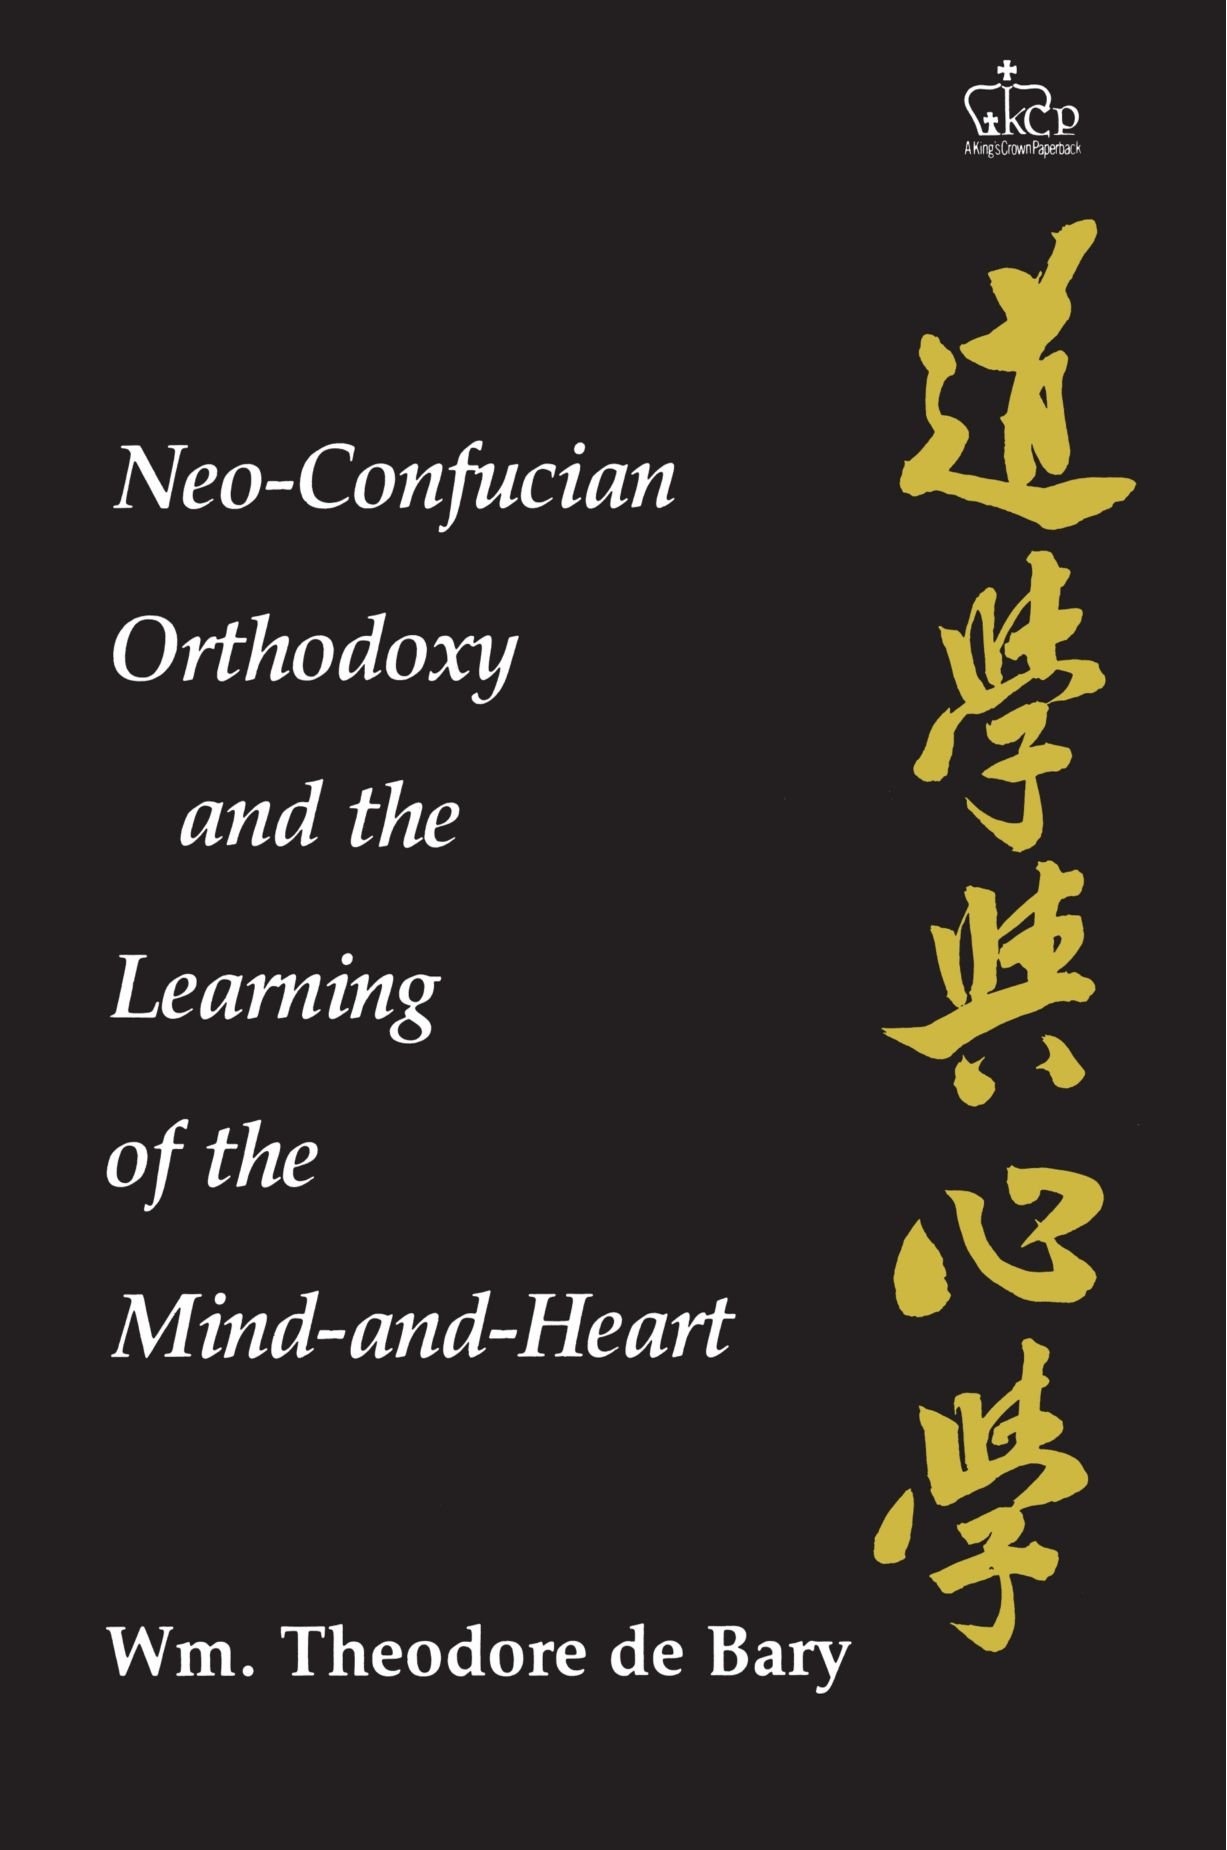 Neo-Confucian Orthodoxy and the Learning of the Mind-and-Heart (Neo- Confucian Studies): Wm. Theodore de Bary: 9780231052290: Amazon.com: Books